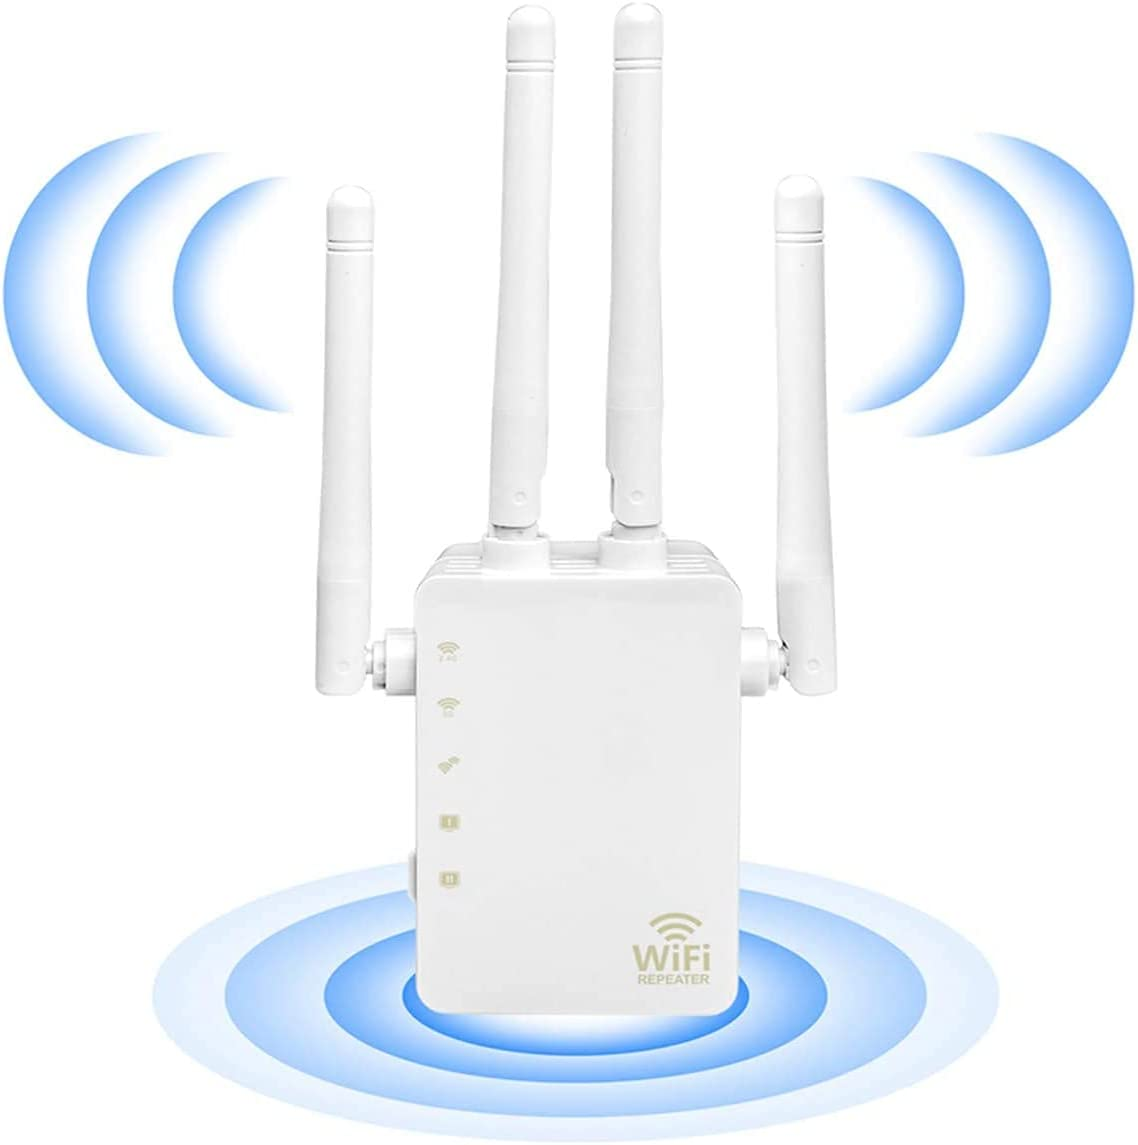 WiFi Extender - WiFi Repeater, WiFi Booster Covers Up to 2500 Sq.ft and 30 Devices, Up to 1200Mbps Dual Band WiFi Repeater with Ethernet Port, Wireless Signal Booster for Home